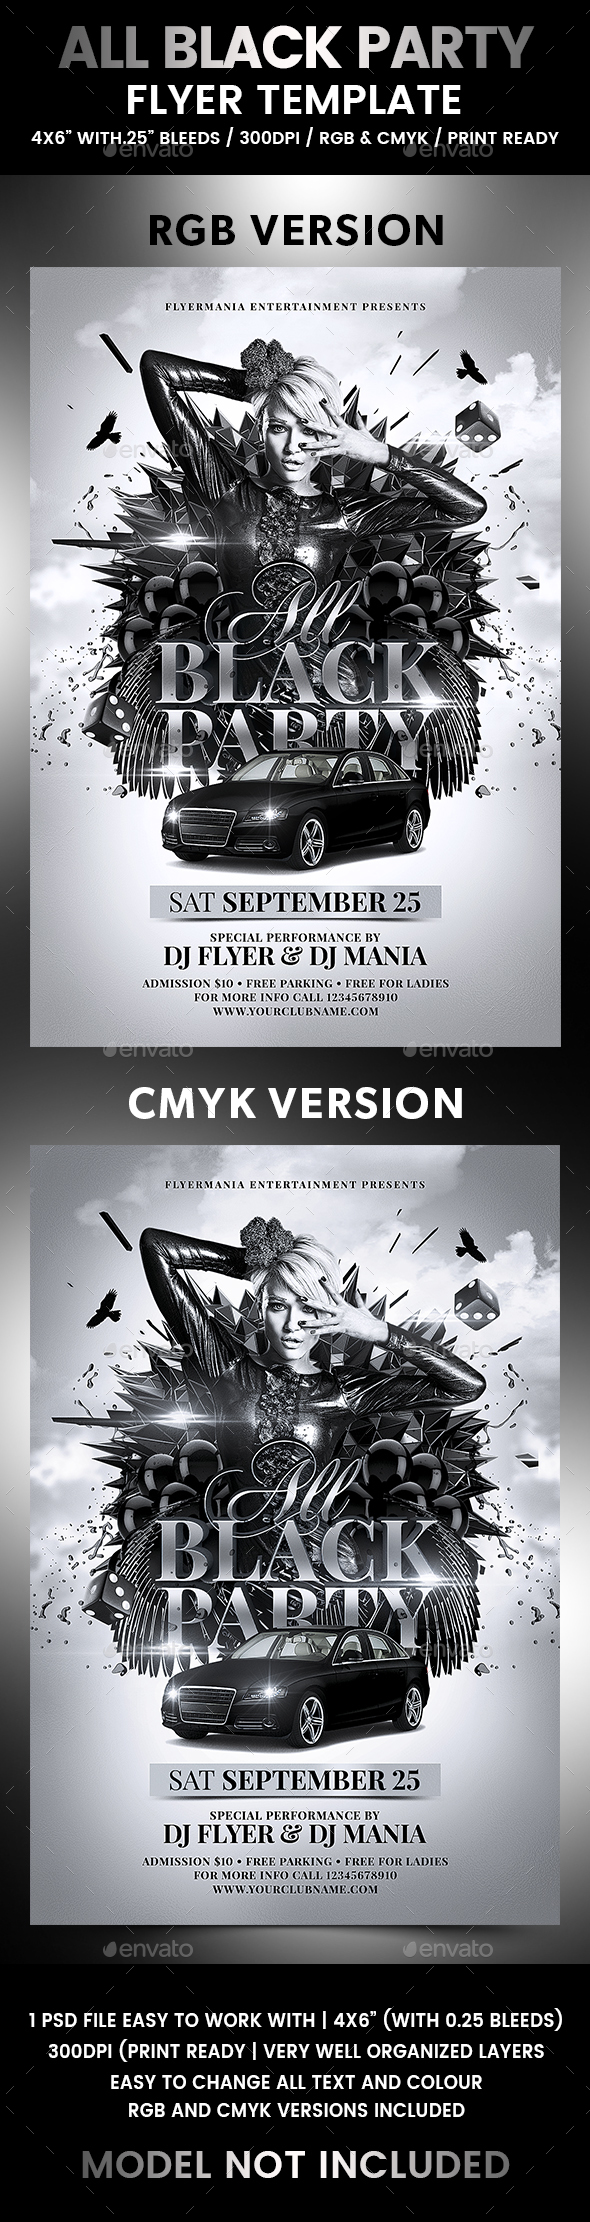 All Black Party Flyer Template - Flyers Print Templates